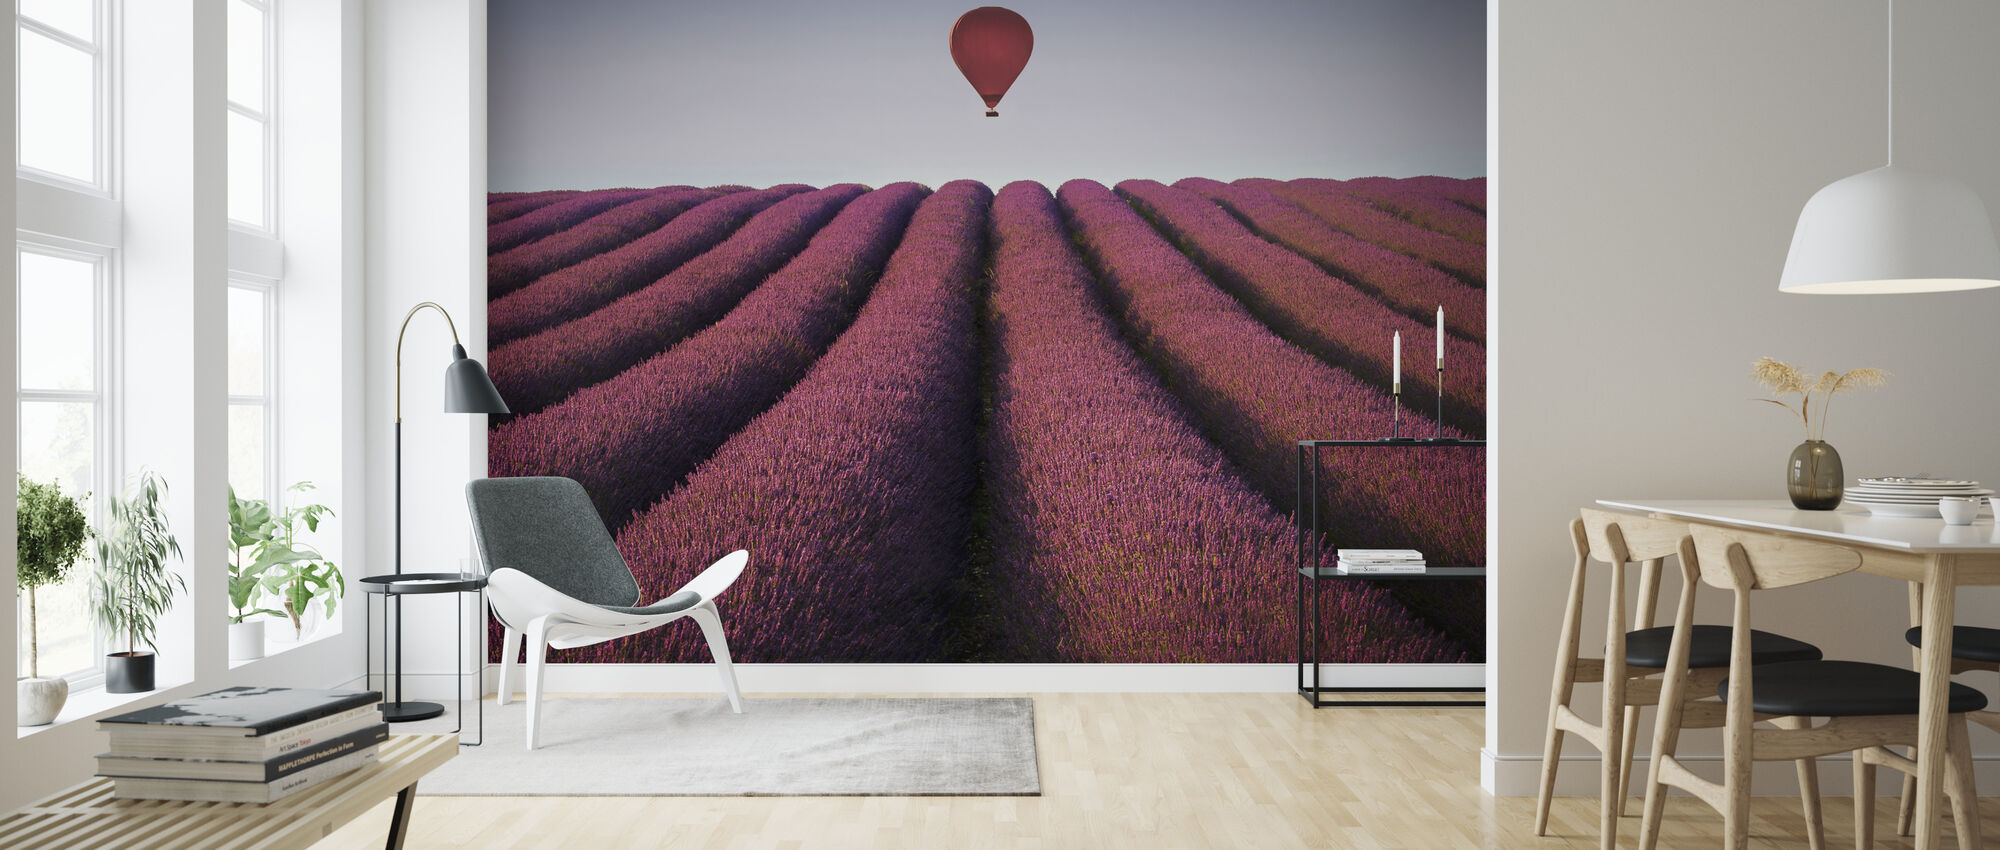 Flying High - Wallpaper - Living Room